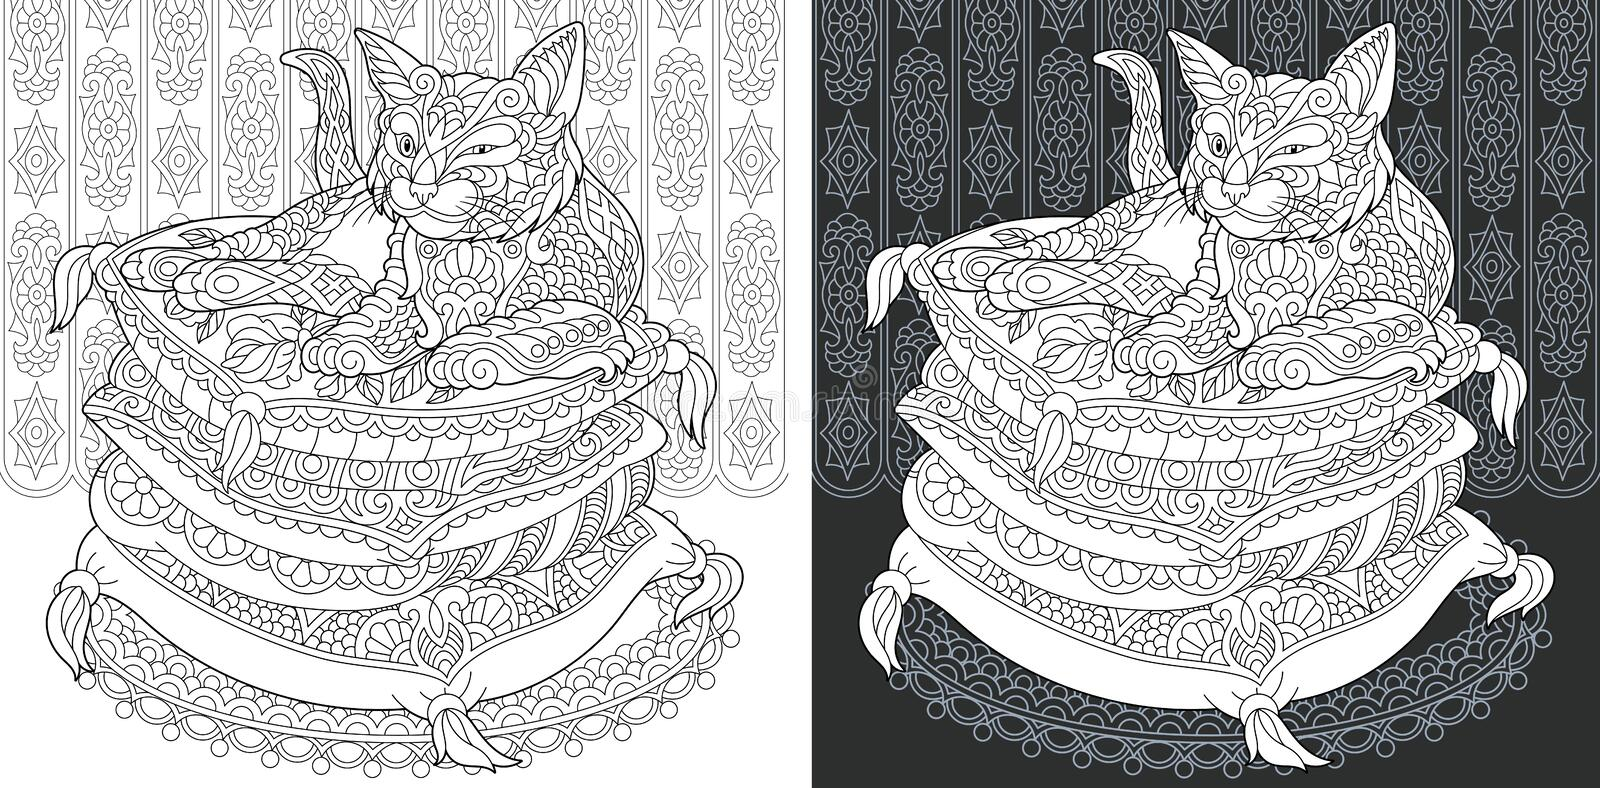 Coloring book page with cat royalty free stock photography